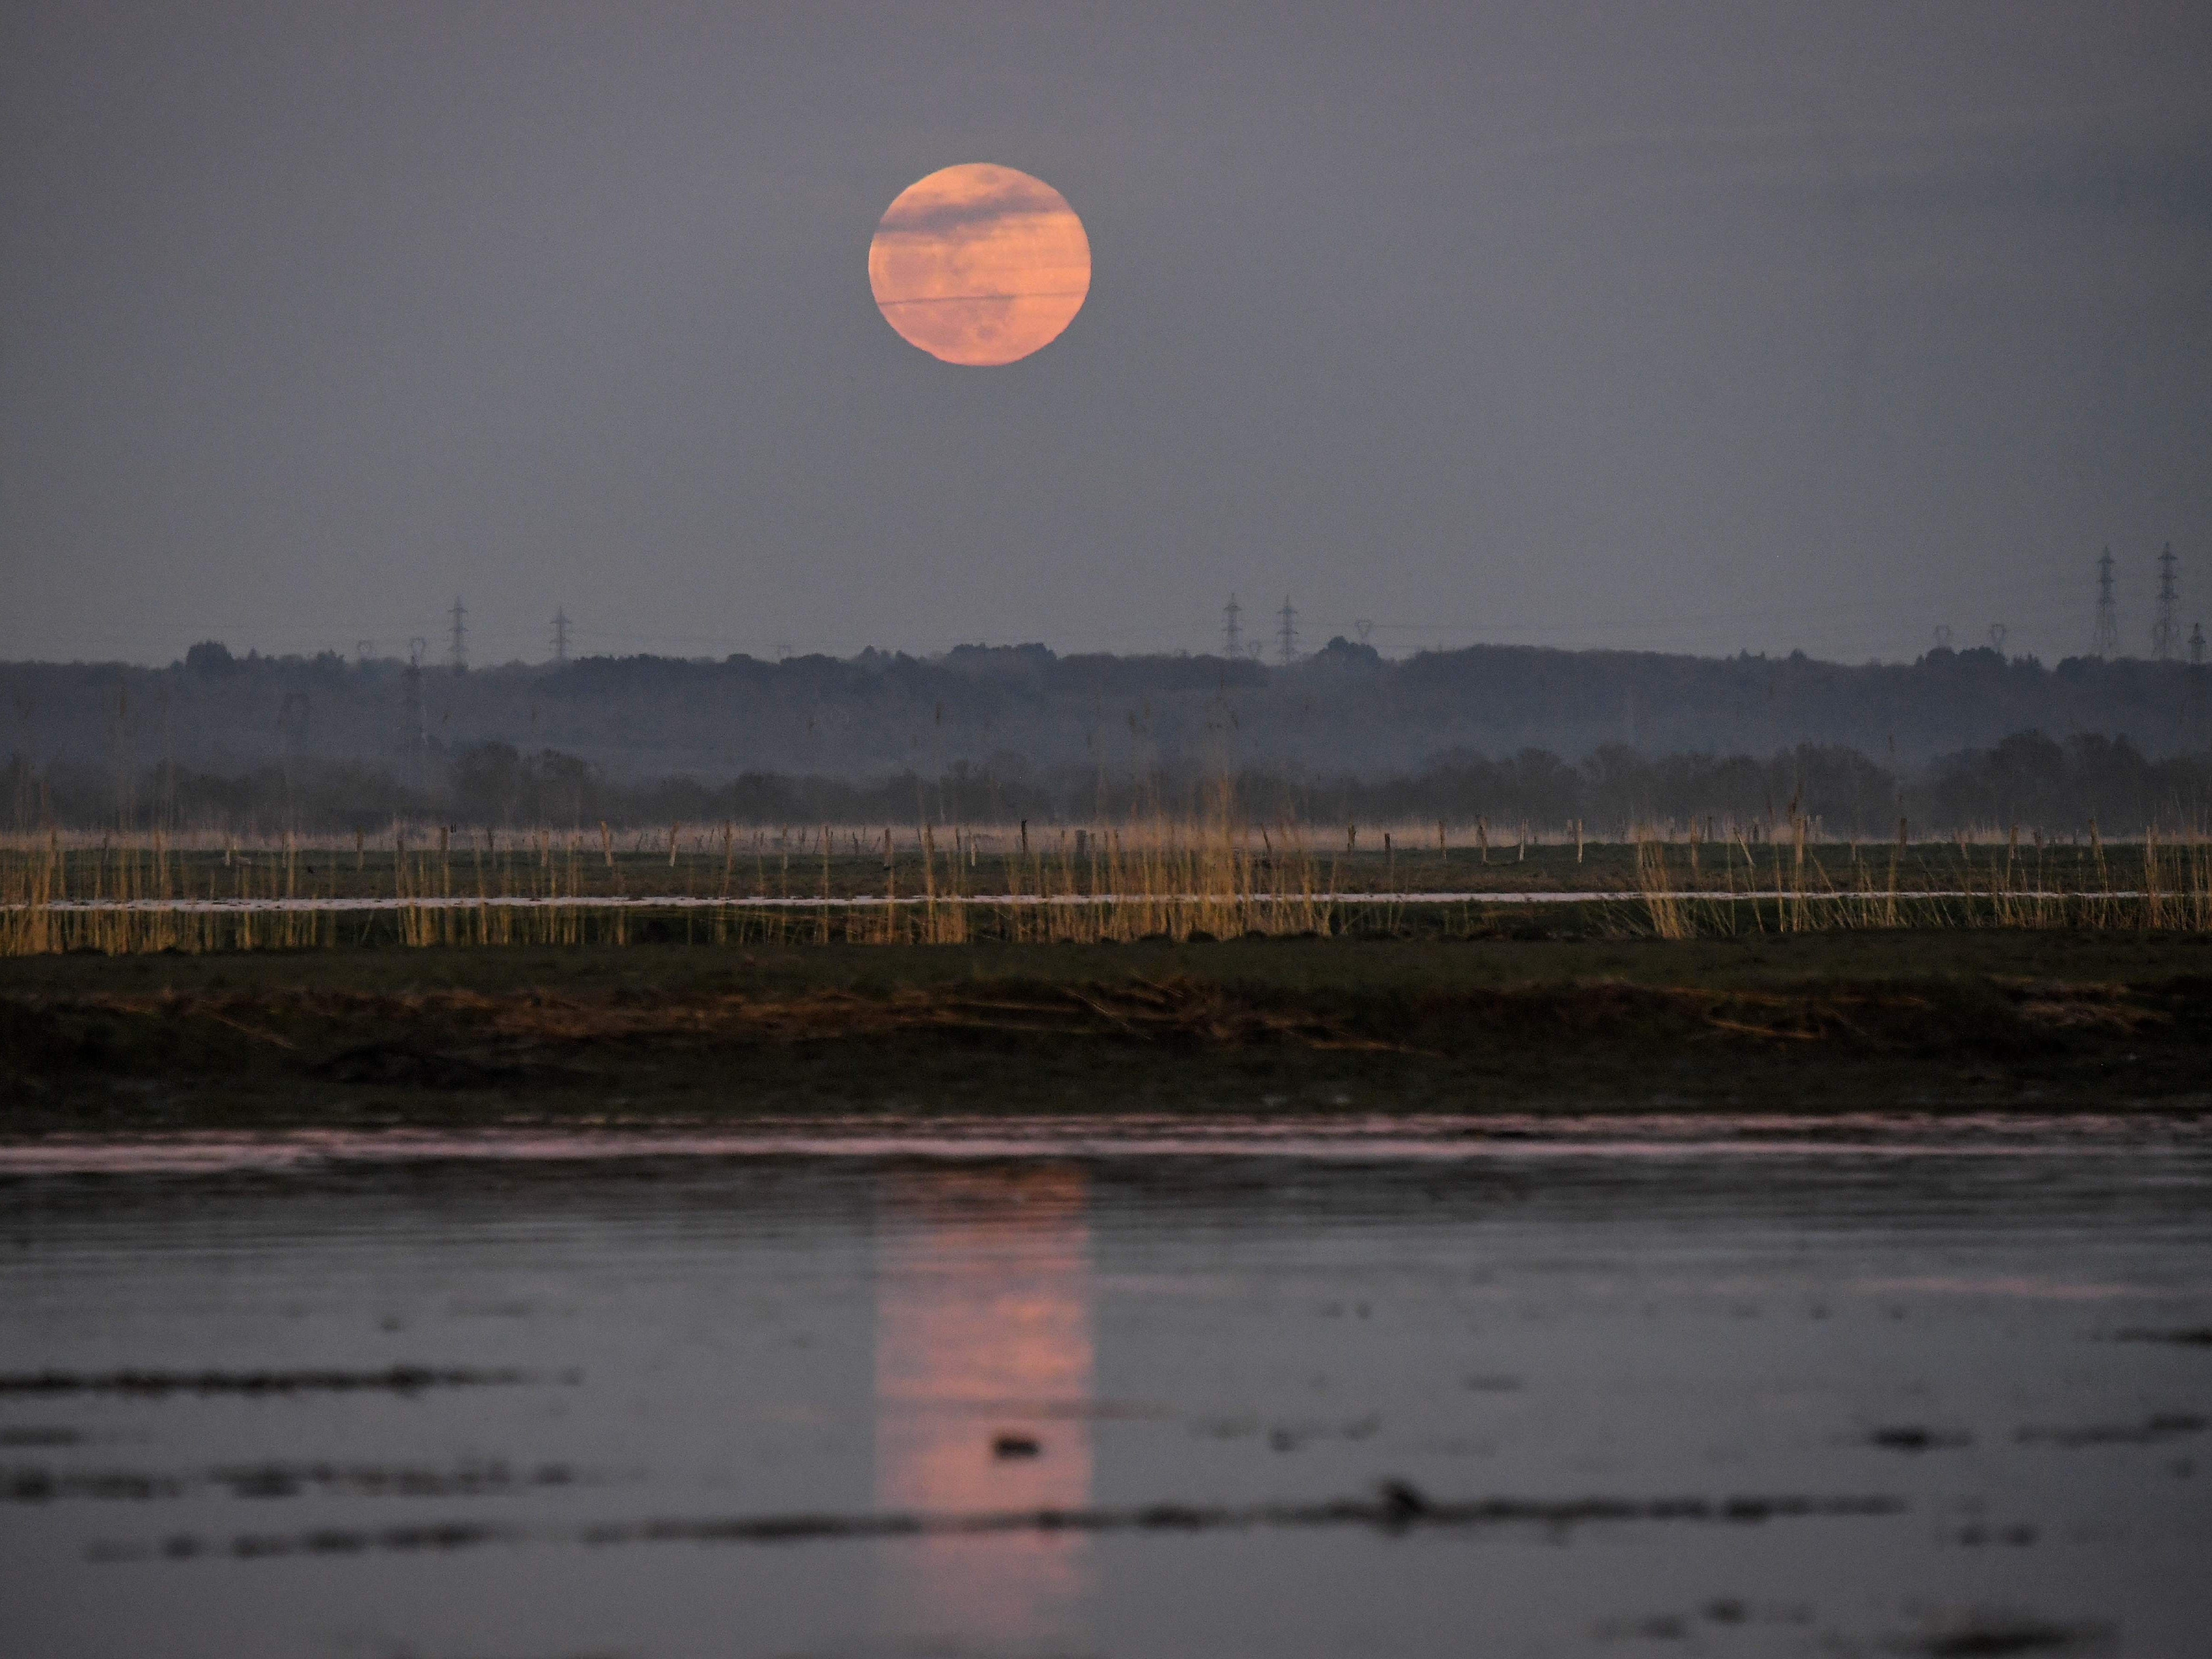 A supermoon rises over the banks of the River Loire at Lavau-sur-Loire, France on Feb. 19, 2019.